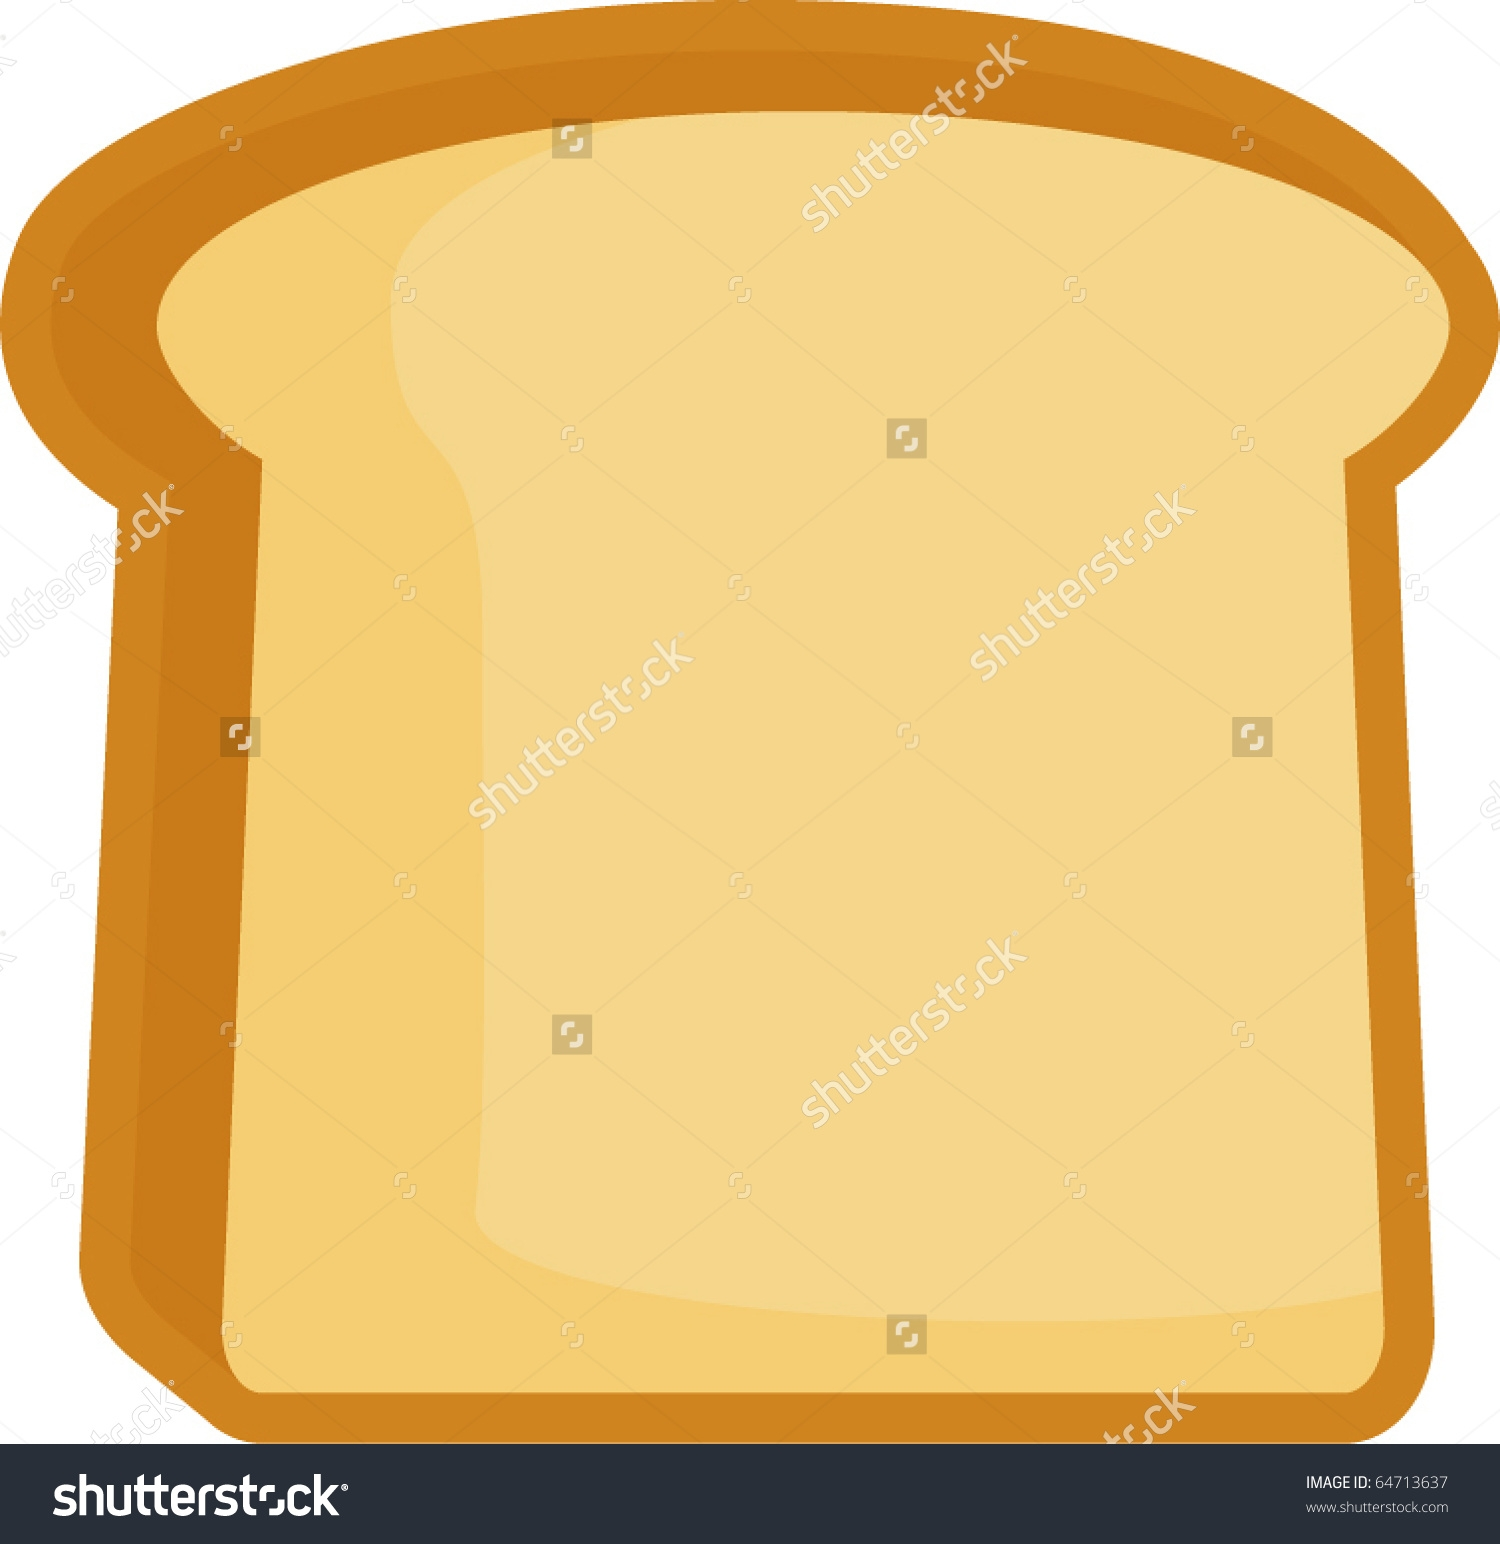 Toast clipart. Fresh collection digital coloring